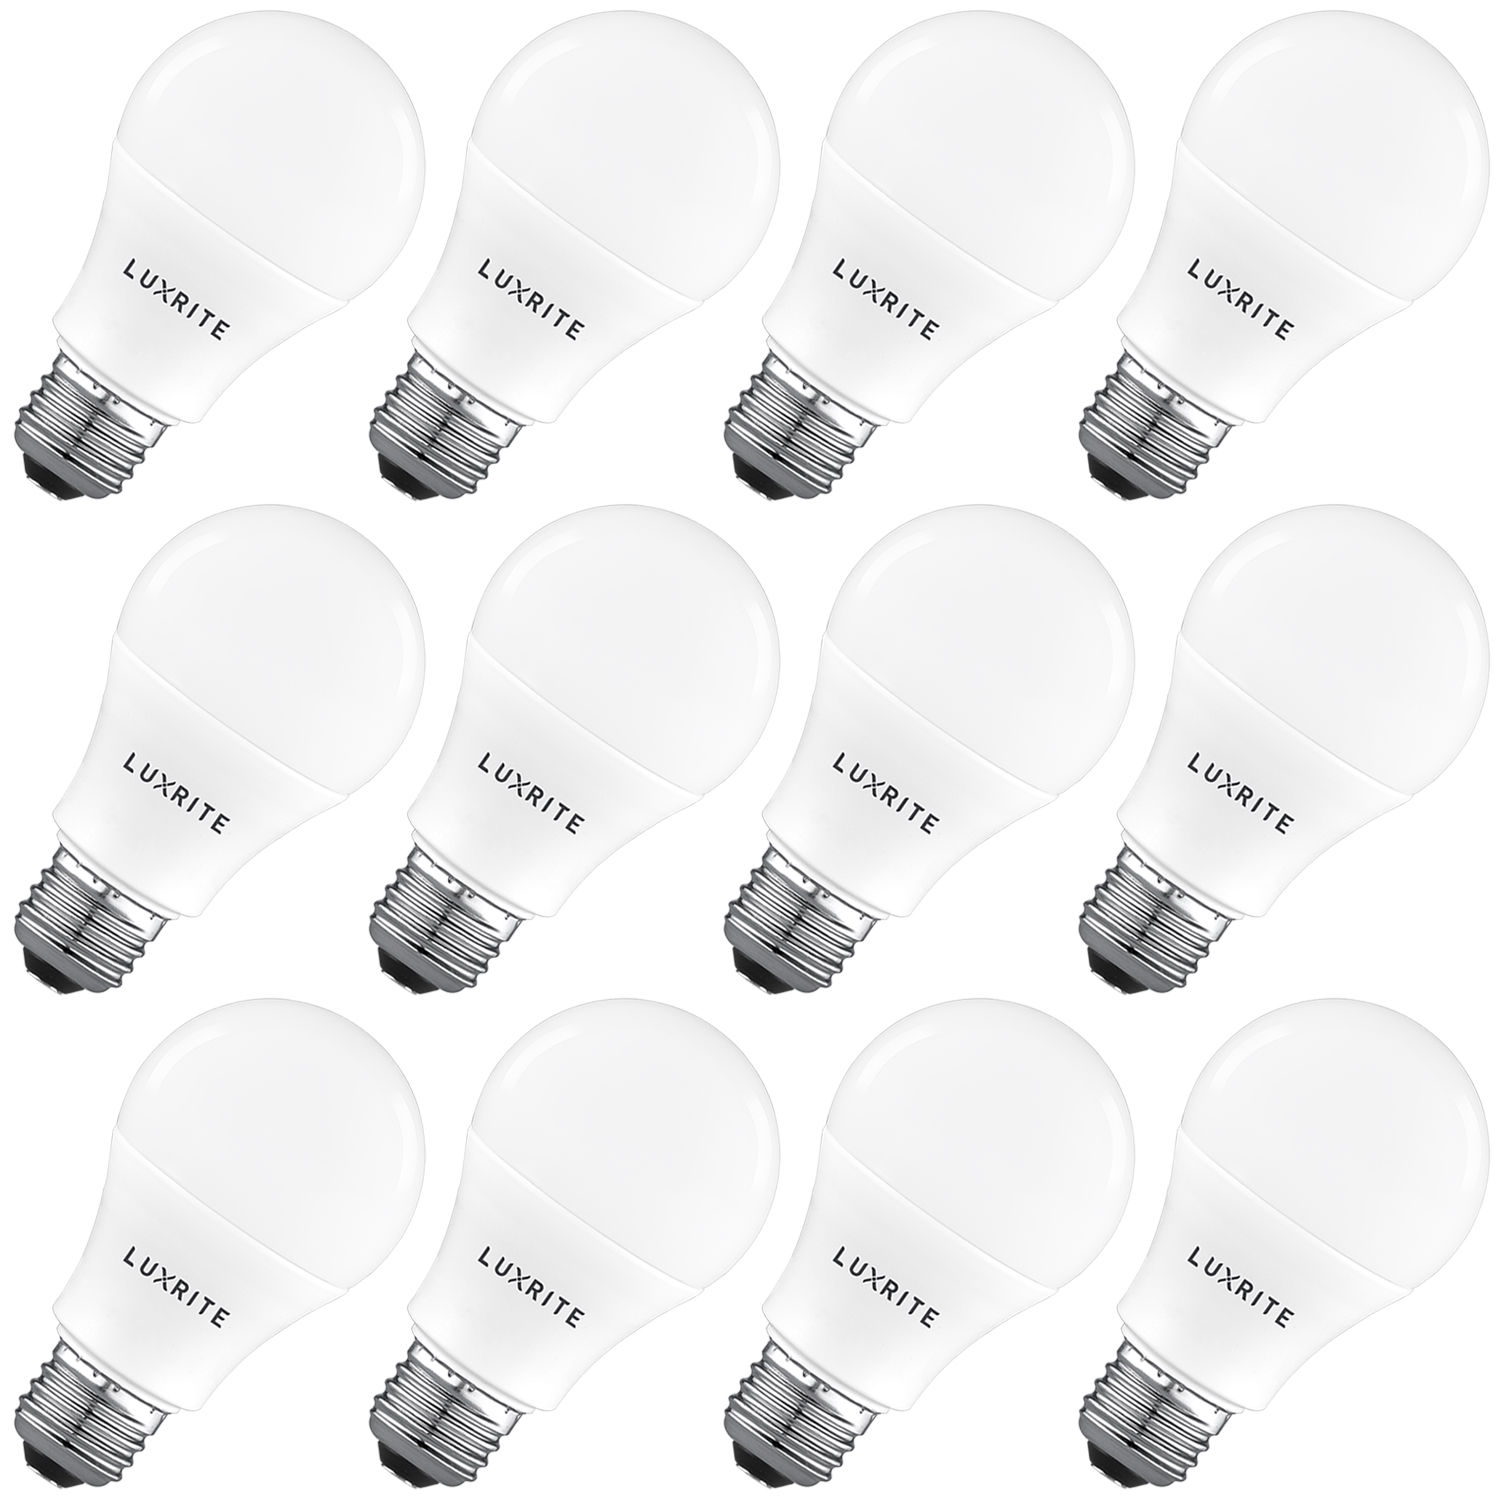 Luxrite A19 Led Light Bulb 100w Equivalent Non Dimmable